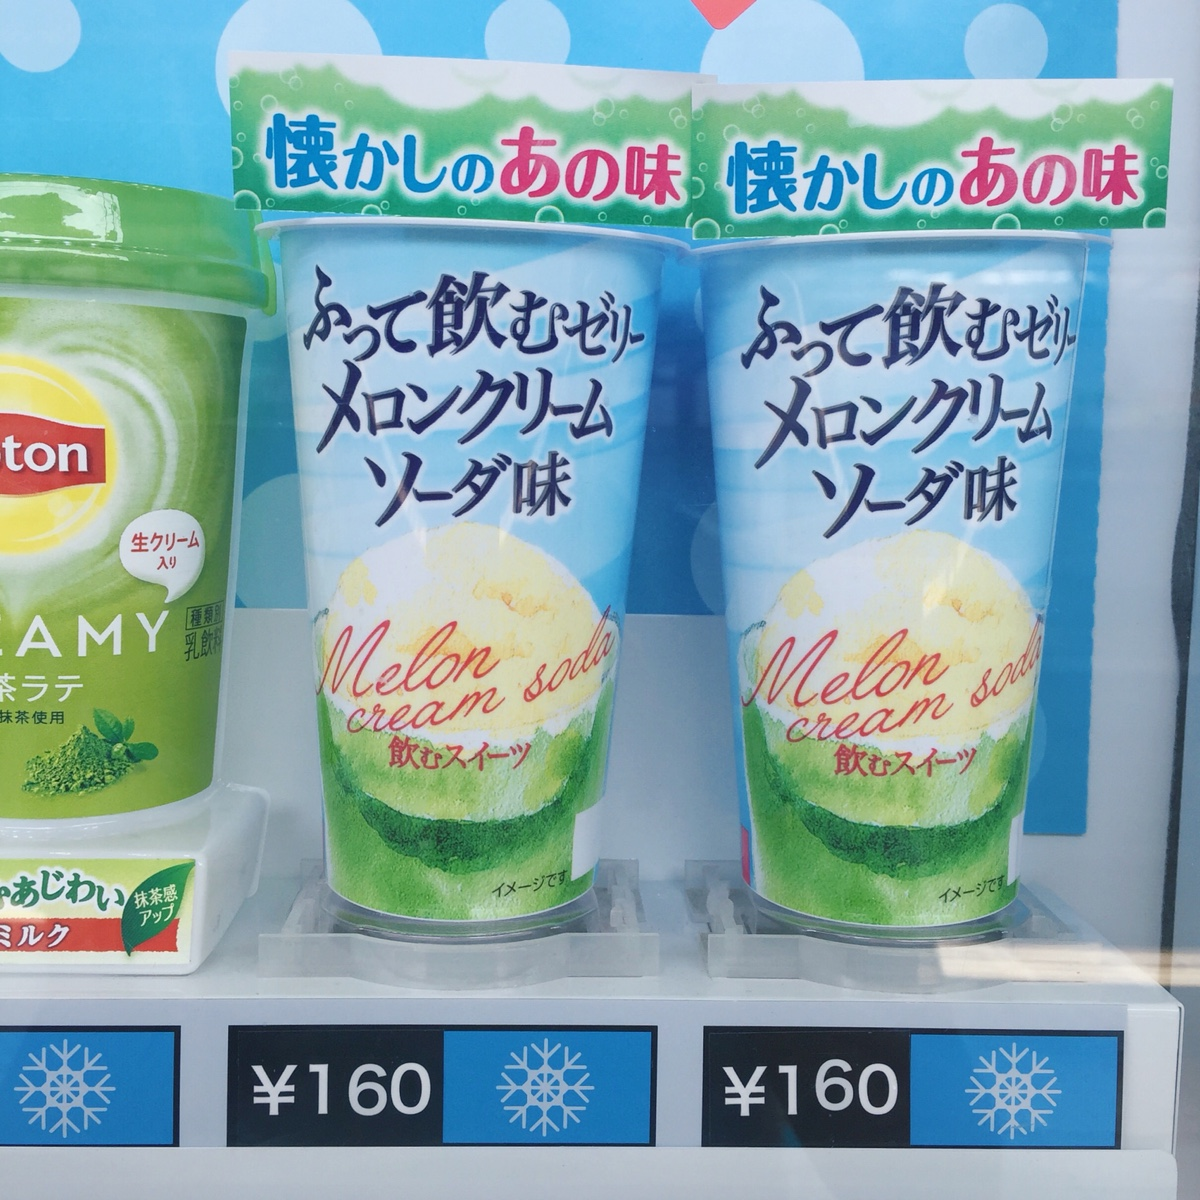 melon-cream-soda.jpg